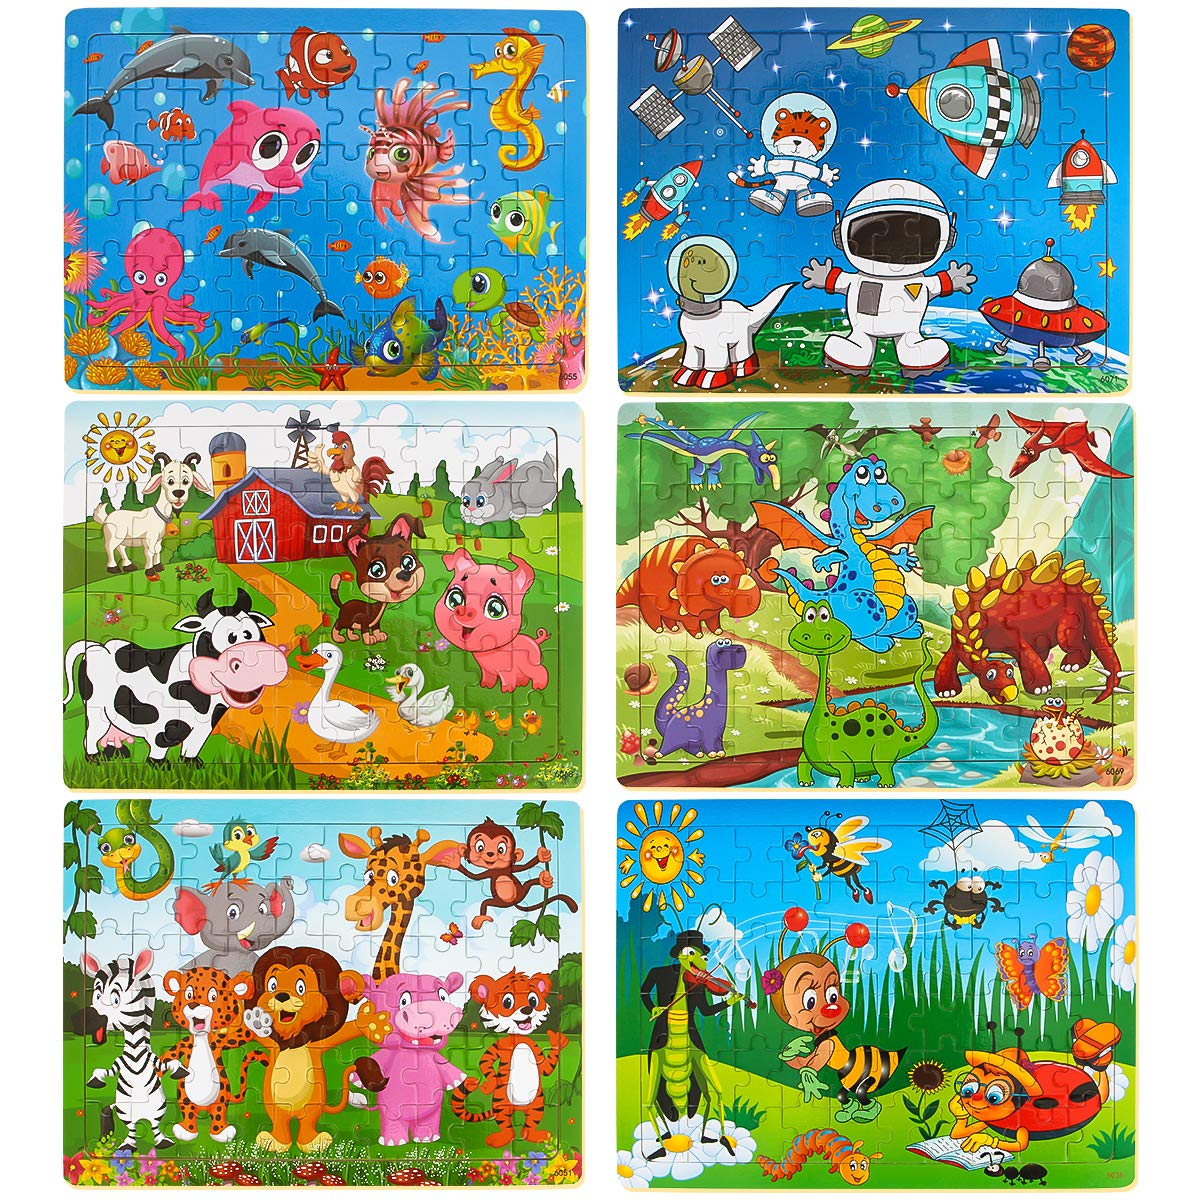 Dreampark Puzzles for Kids Ages 3-8, 6 Pack Wooden Jigsaw Puzzles 60 Pieces Preschool Educational Learning Toys Set for Boys and Girls by Dreampark